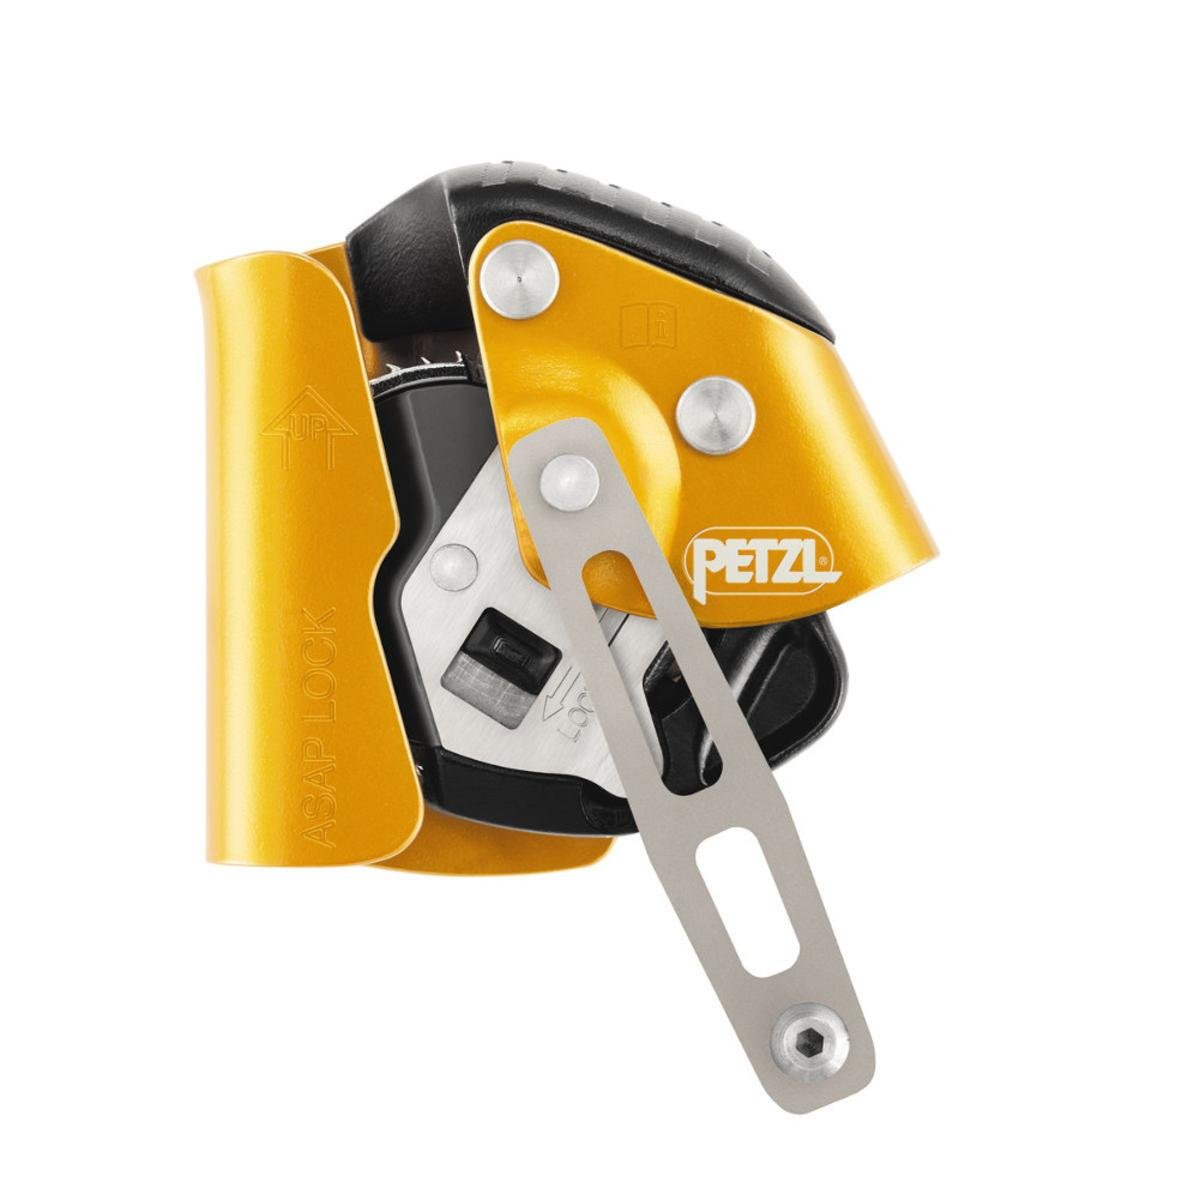 Petzl - ASAP LOCK, Mobile Fall Arrester with Locking Function